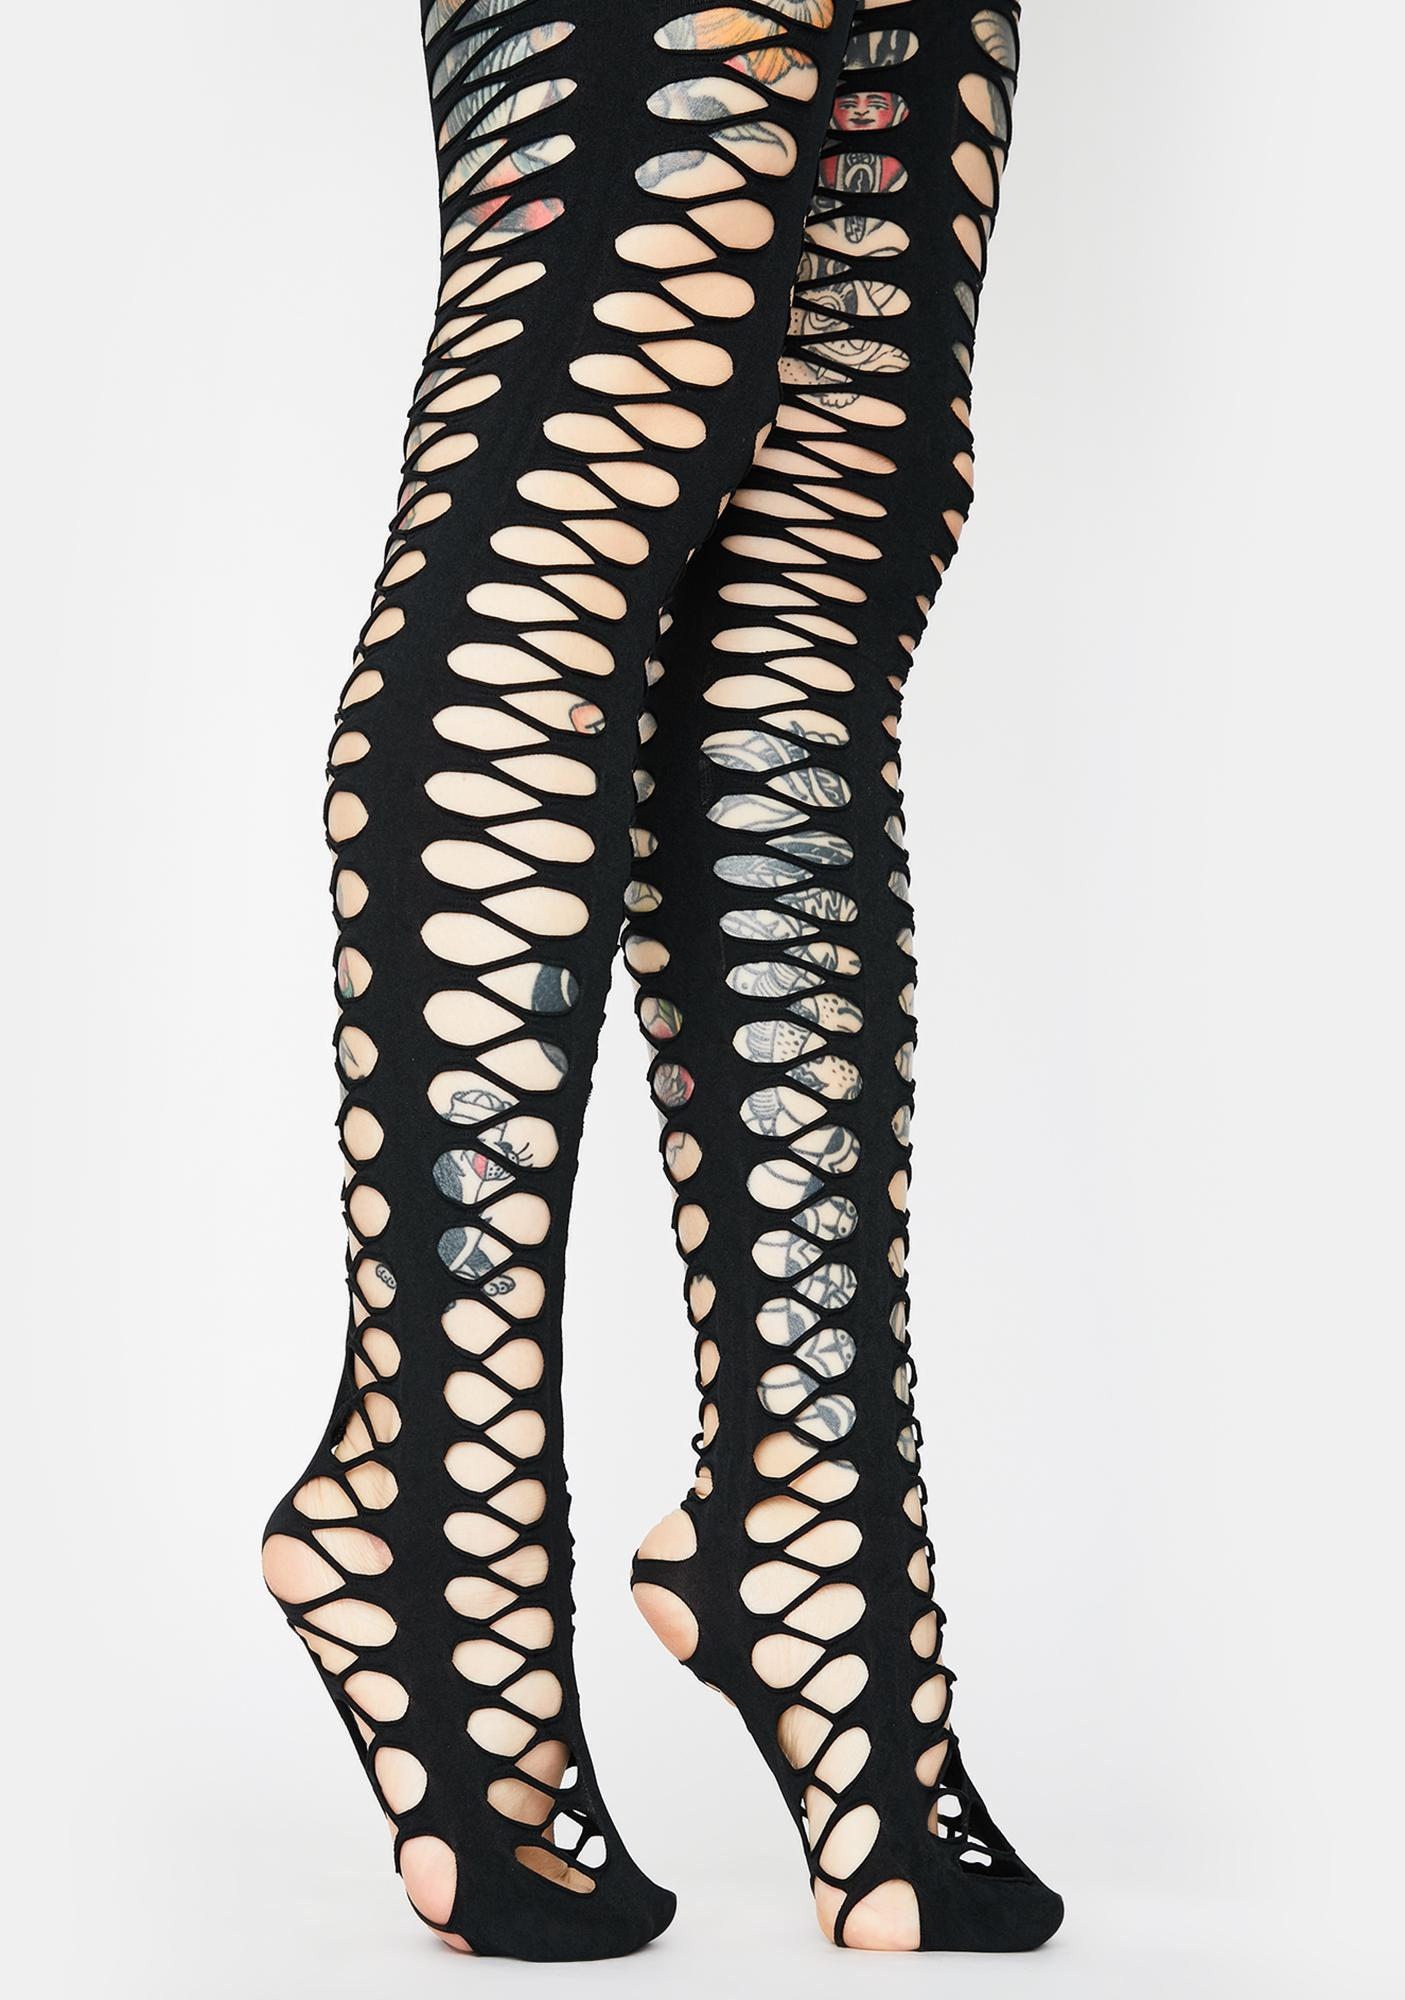 Killstar Mistress Fishnet Tights